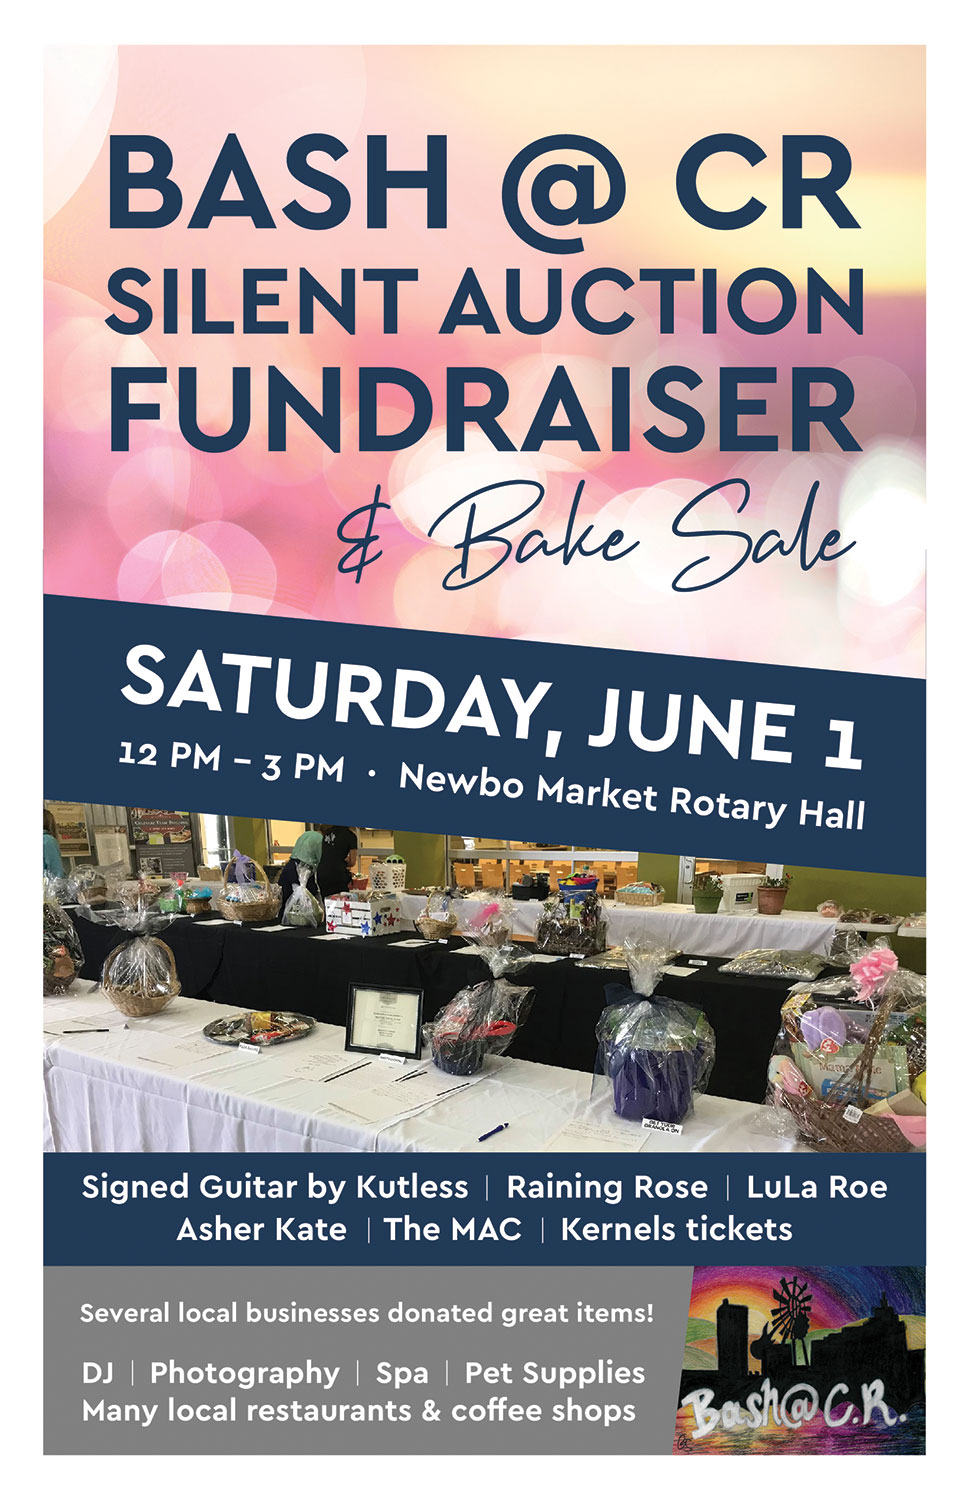 Bash at CR Silent Auction Fundraiser and Bake Sale